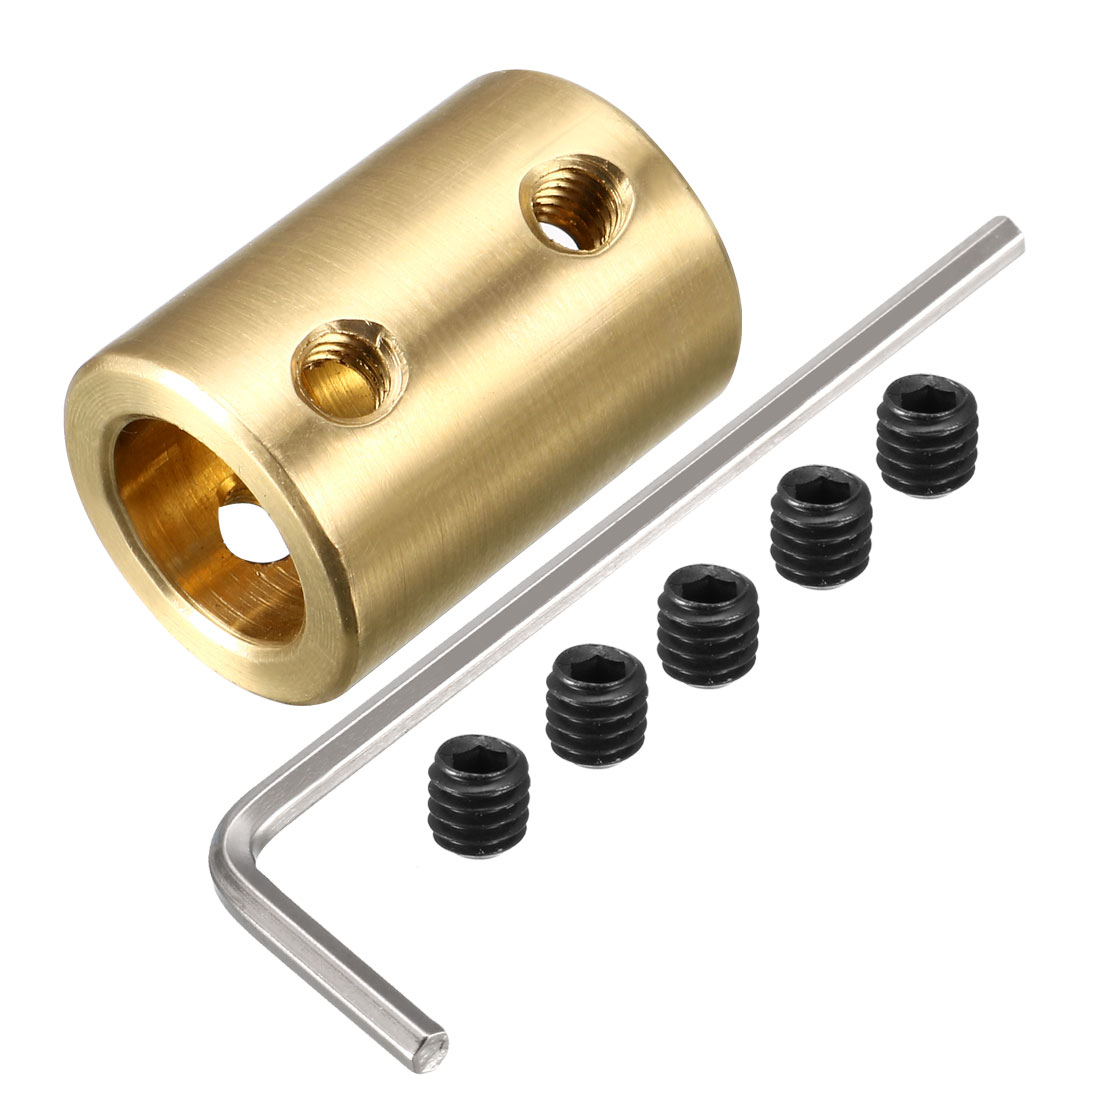 6mm to 10mm Copper DIY Motor Shaft Coupling Joint Connector for Electric Car Toy